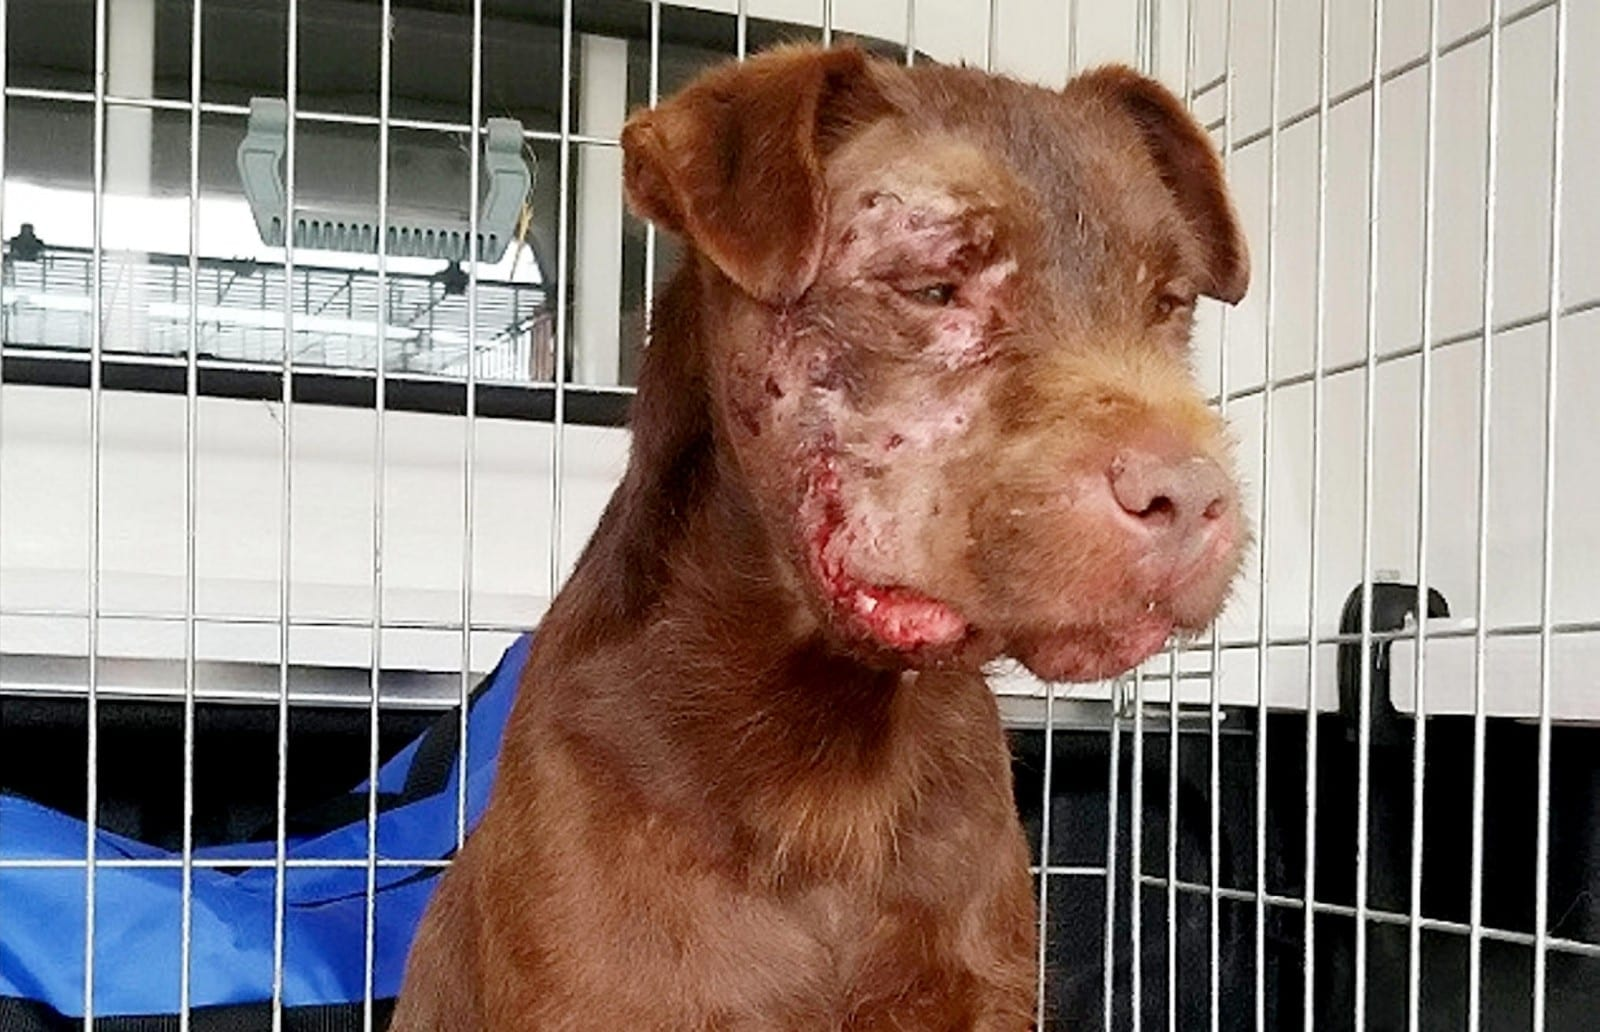 Graphic Photos - Terrier Type Dog Suffered Horrific Facial Injuries After Being Forced To Fight A Badger By Its Owners